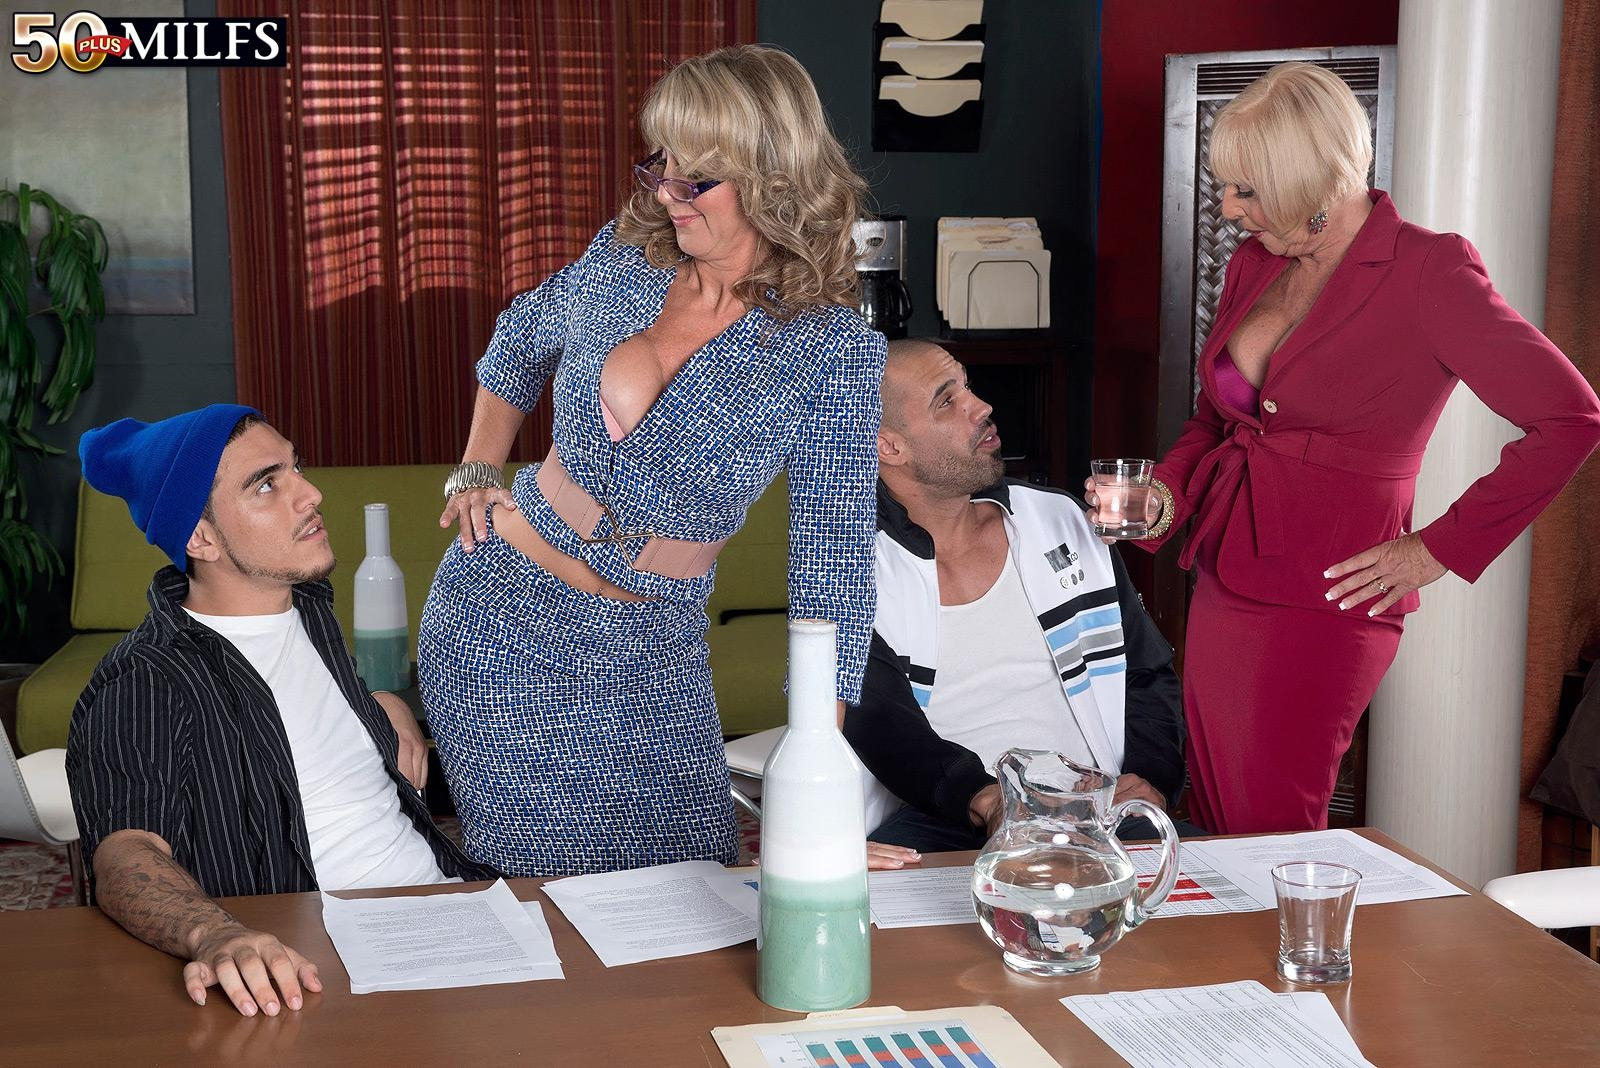 Mature women Jenna Covelli and Scarlet Andrews seduce younger men at a diner